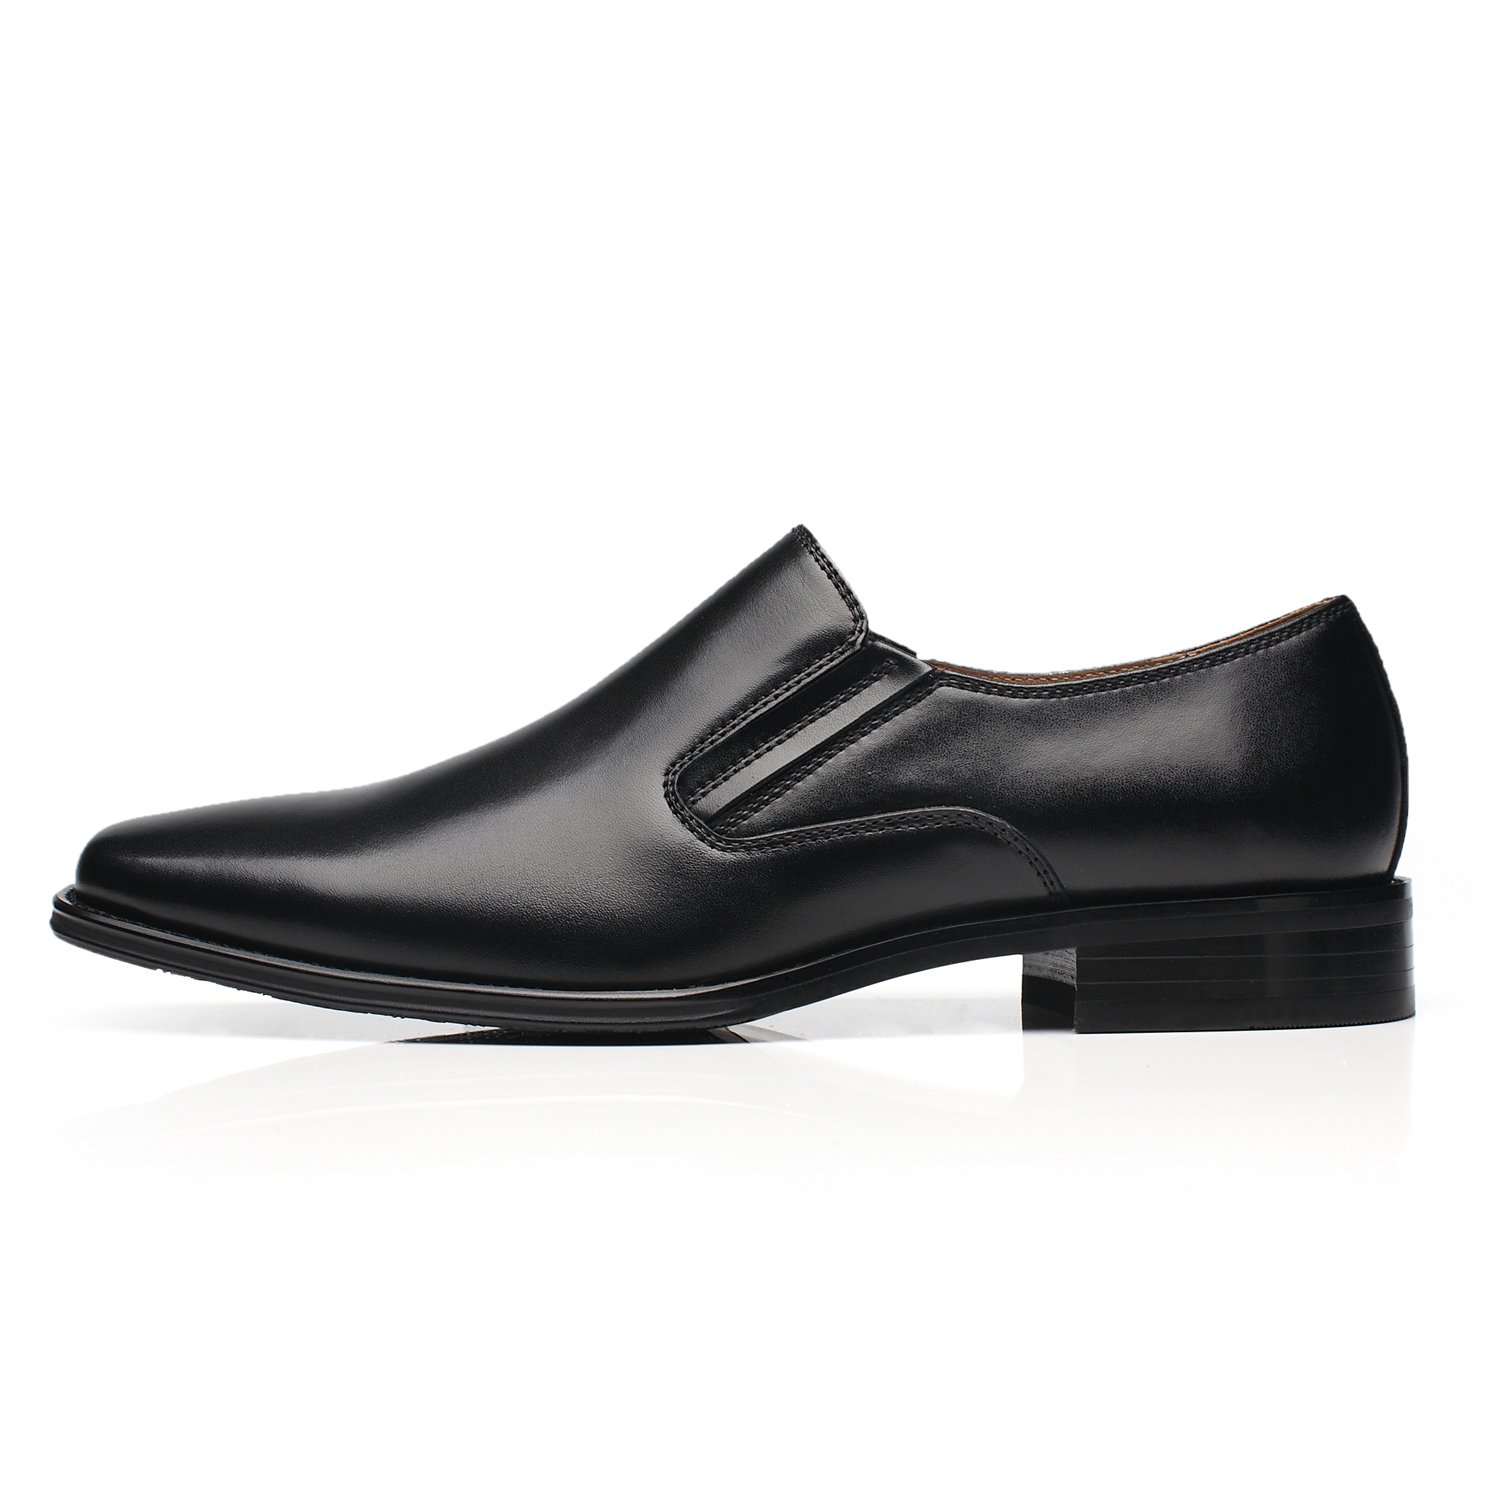 9972033df2ab9 NXT NEW YORK Leather Men Dress Shoes Plain Toe Slip On Loafer Shoes  Comfortable Classic Formal Business Shoes